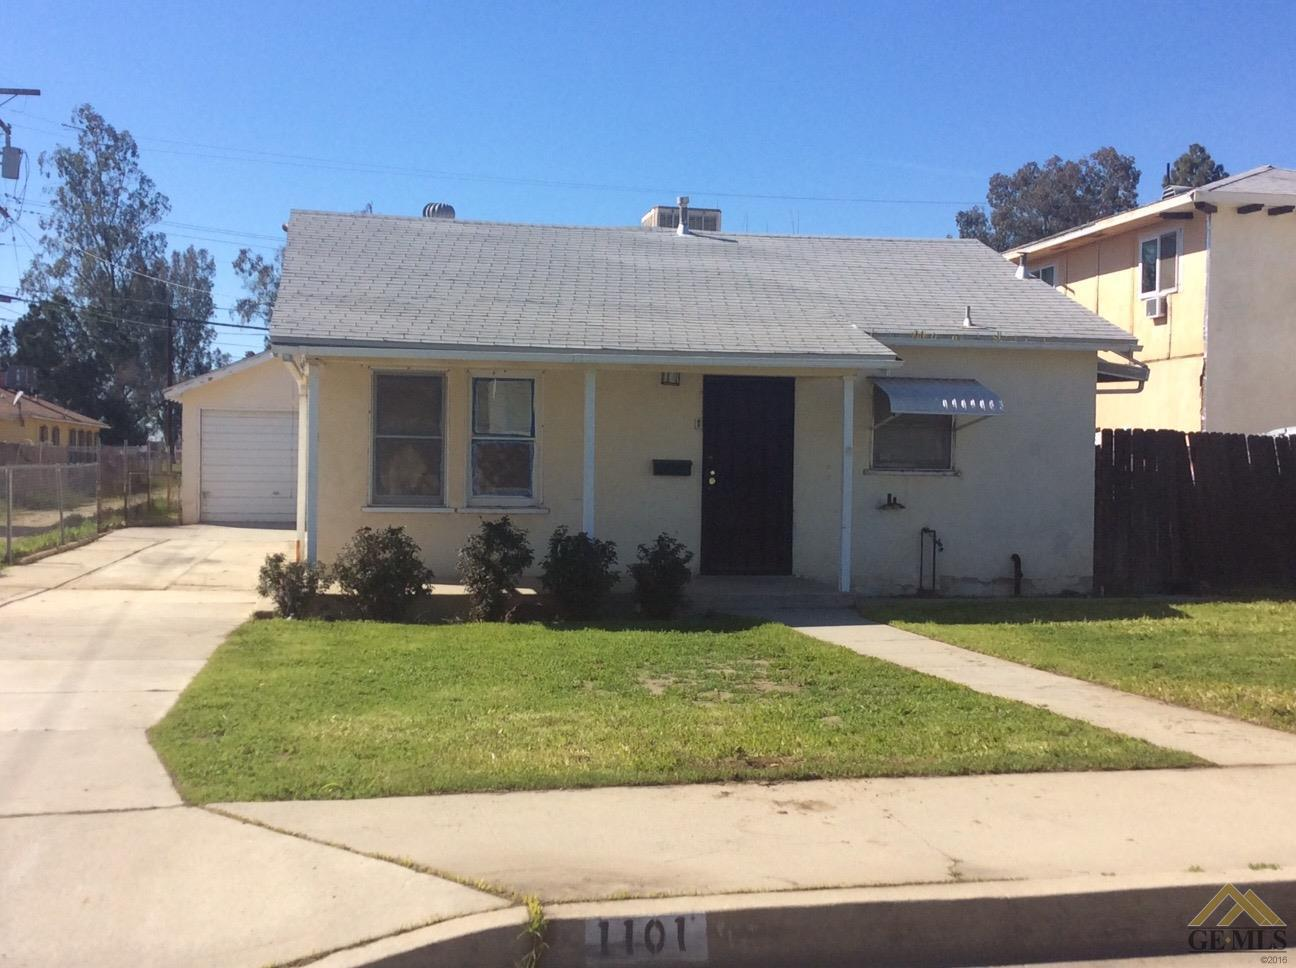 mobile homes for sale in bakersfield with Detail on 69756256 additionally 2517 Tricia Ct Bakersfield CA 93304 M28953 13100 as well Norwex Bathroom Scrub Mitt further 6867515171 in addition Detail.